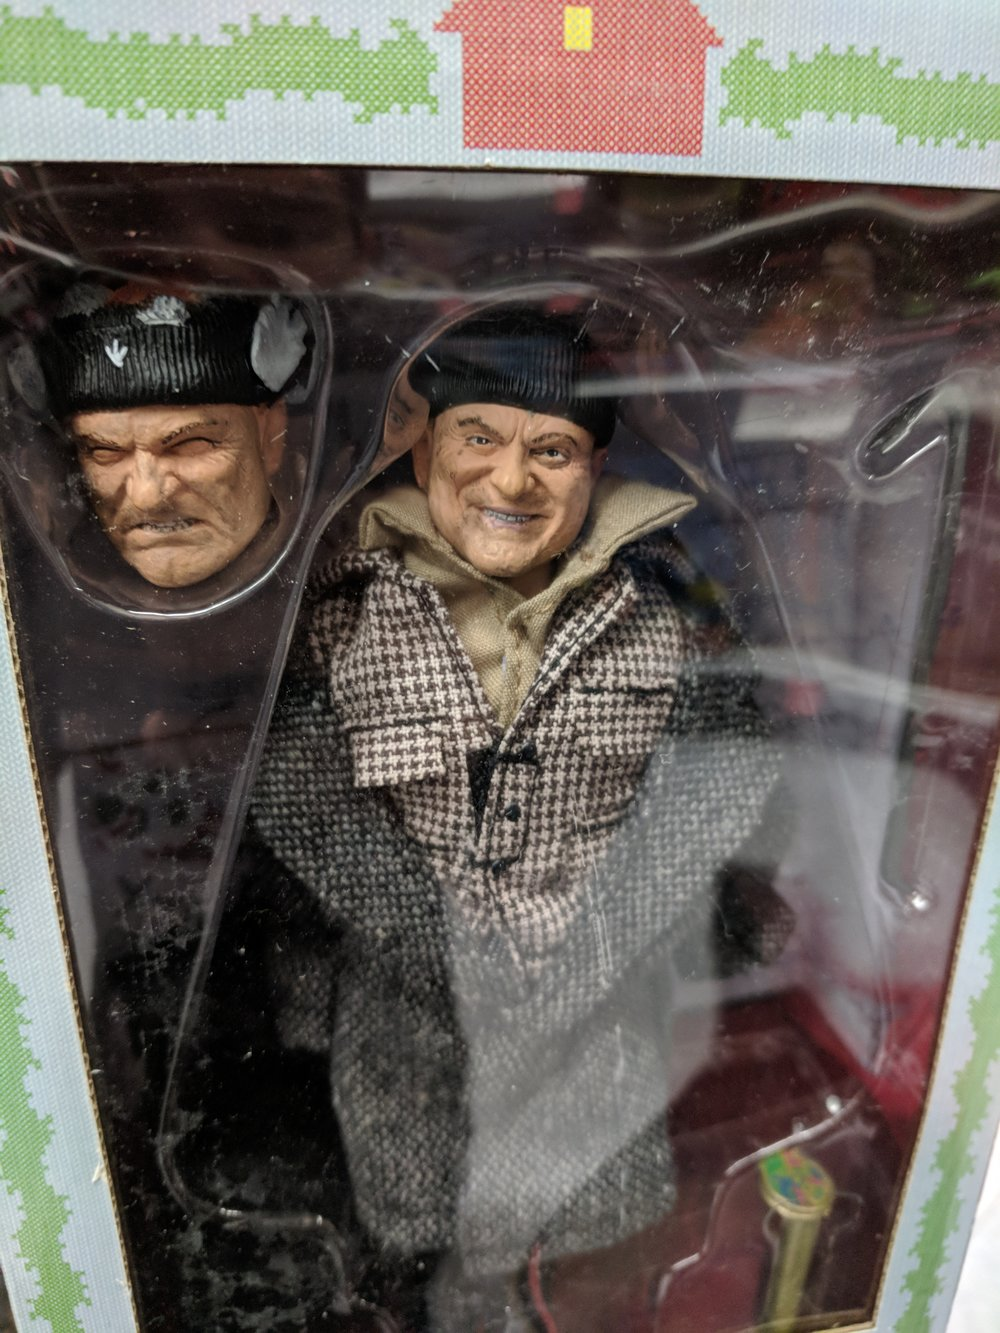 This depiction of Joe Pesci is even more terrifying than that screaming Chucky doll pictured earlier